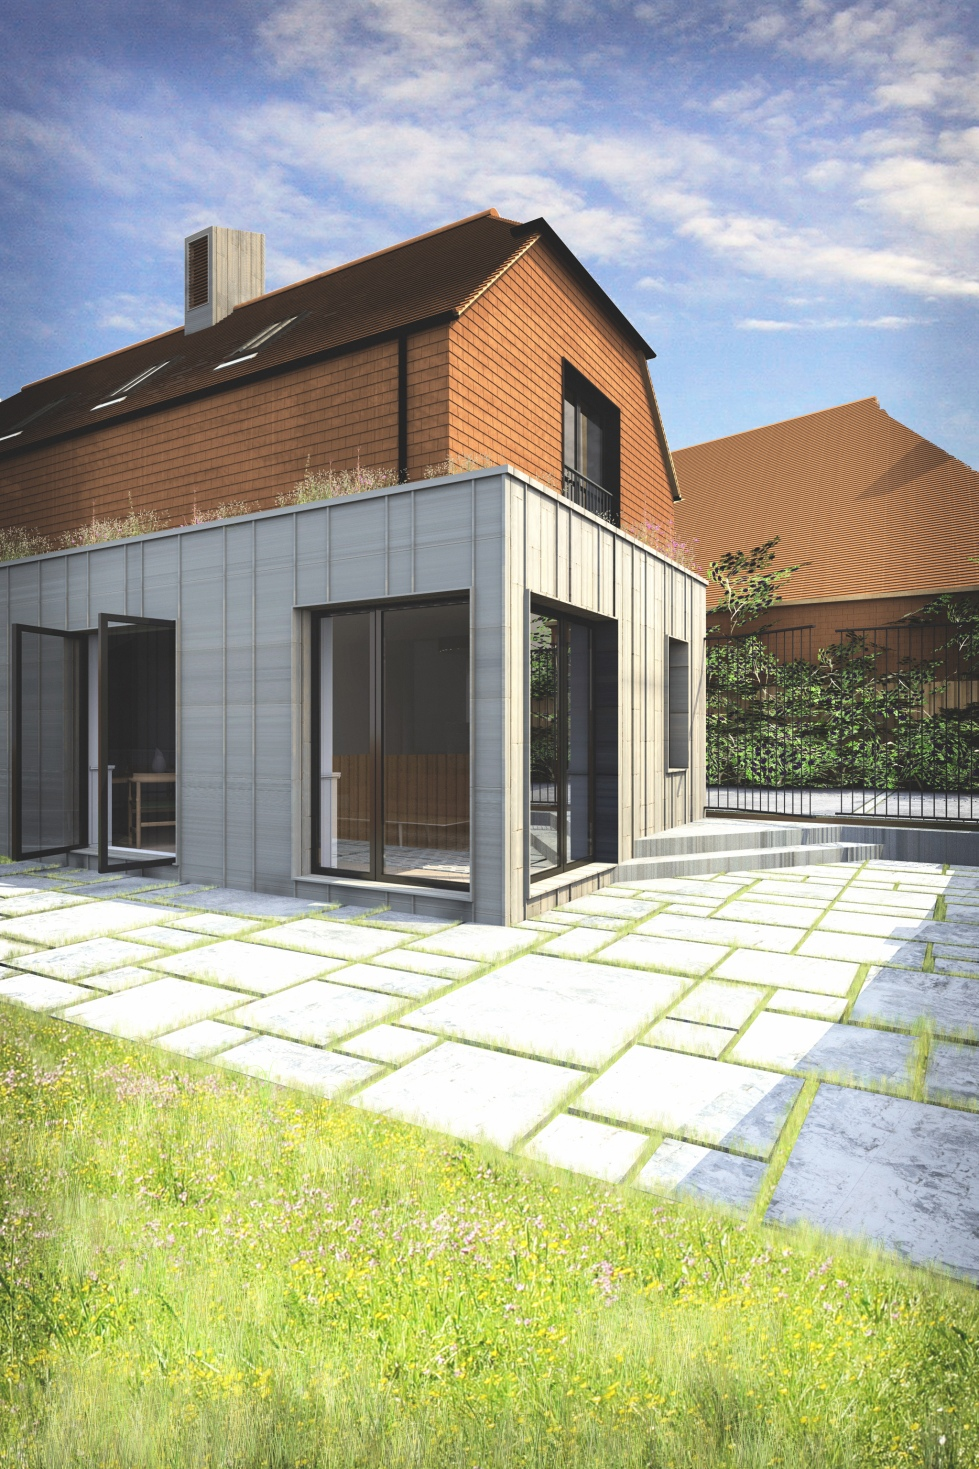 new house, Battle, zinc cladding, listed building, garden, stone paving, tile cladding